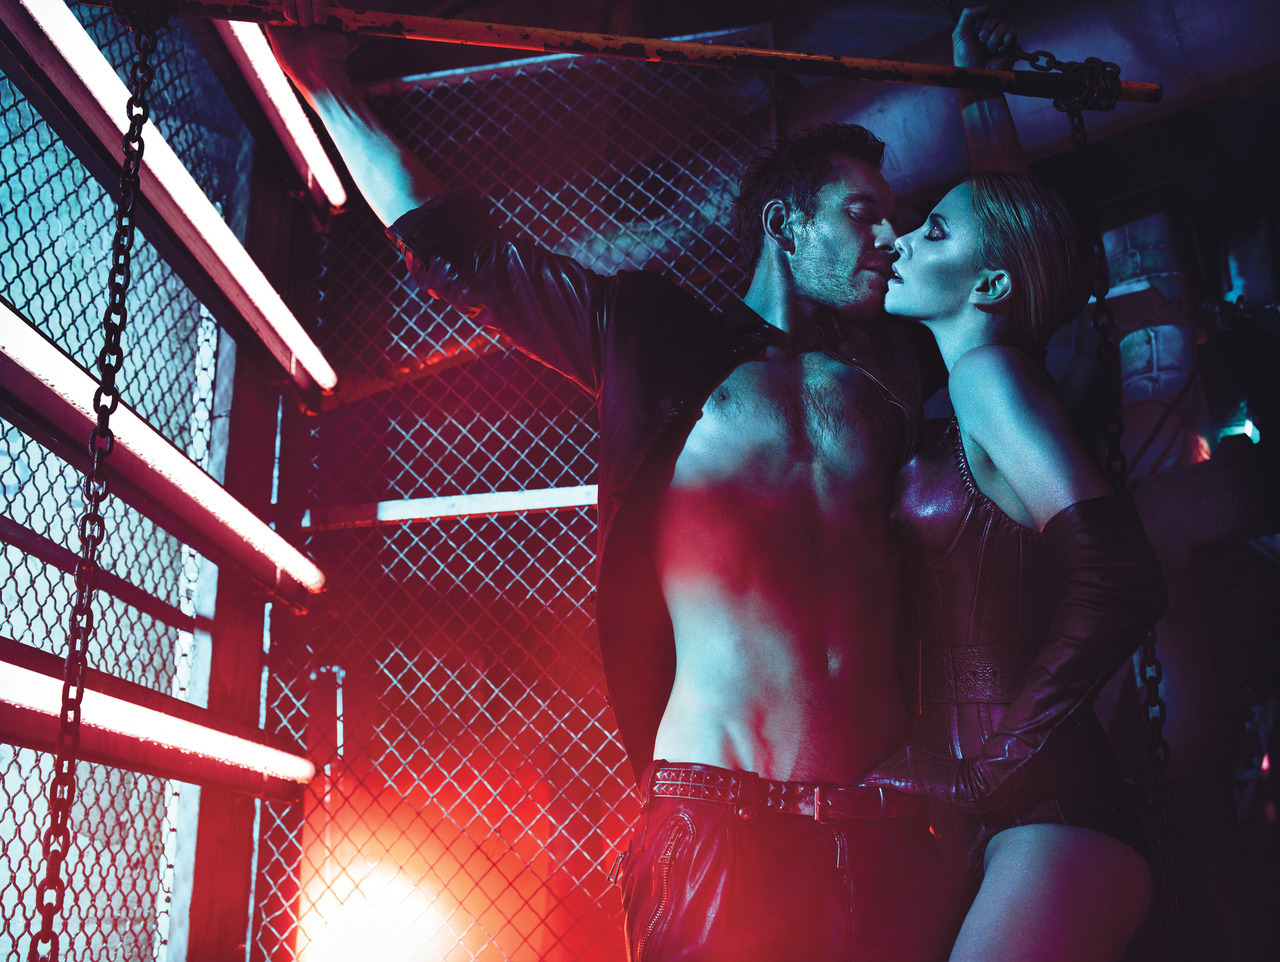 Photo by Mario Sorrenti Ok, all together now: It's gettin hot in here, so take off all your clothes… Charlize and Michael get steamy.